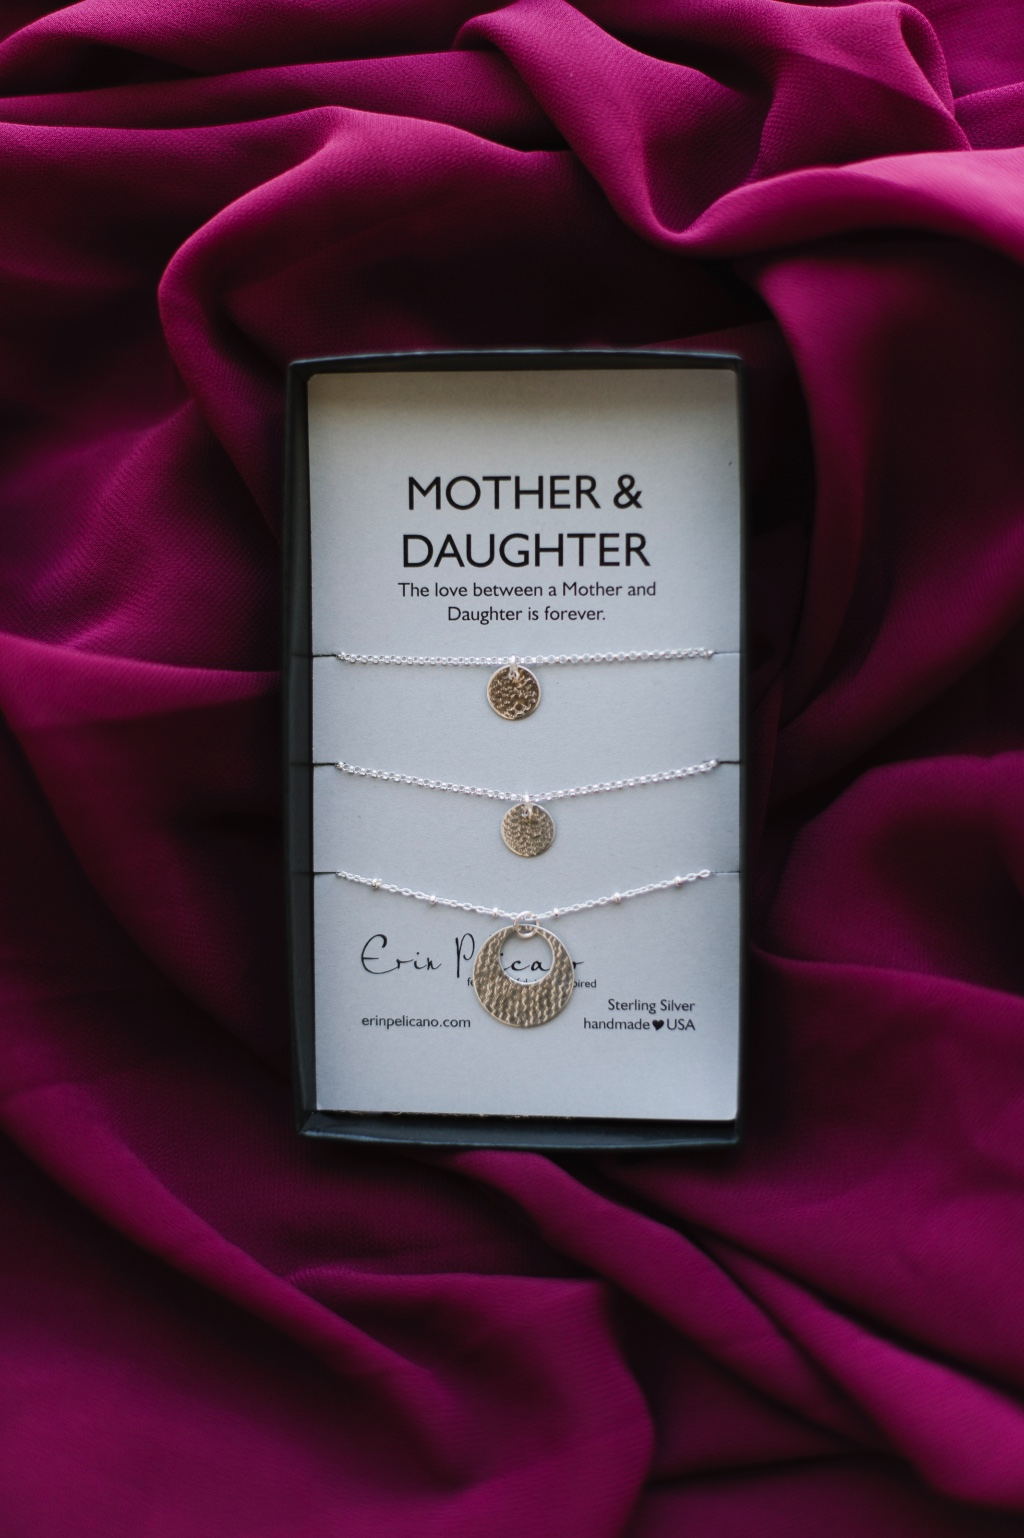 Mother Daughter jewelry, our classic collection, makes the perfect celebration between Bride + Mother of the Bride + Sisters.